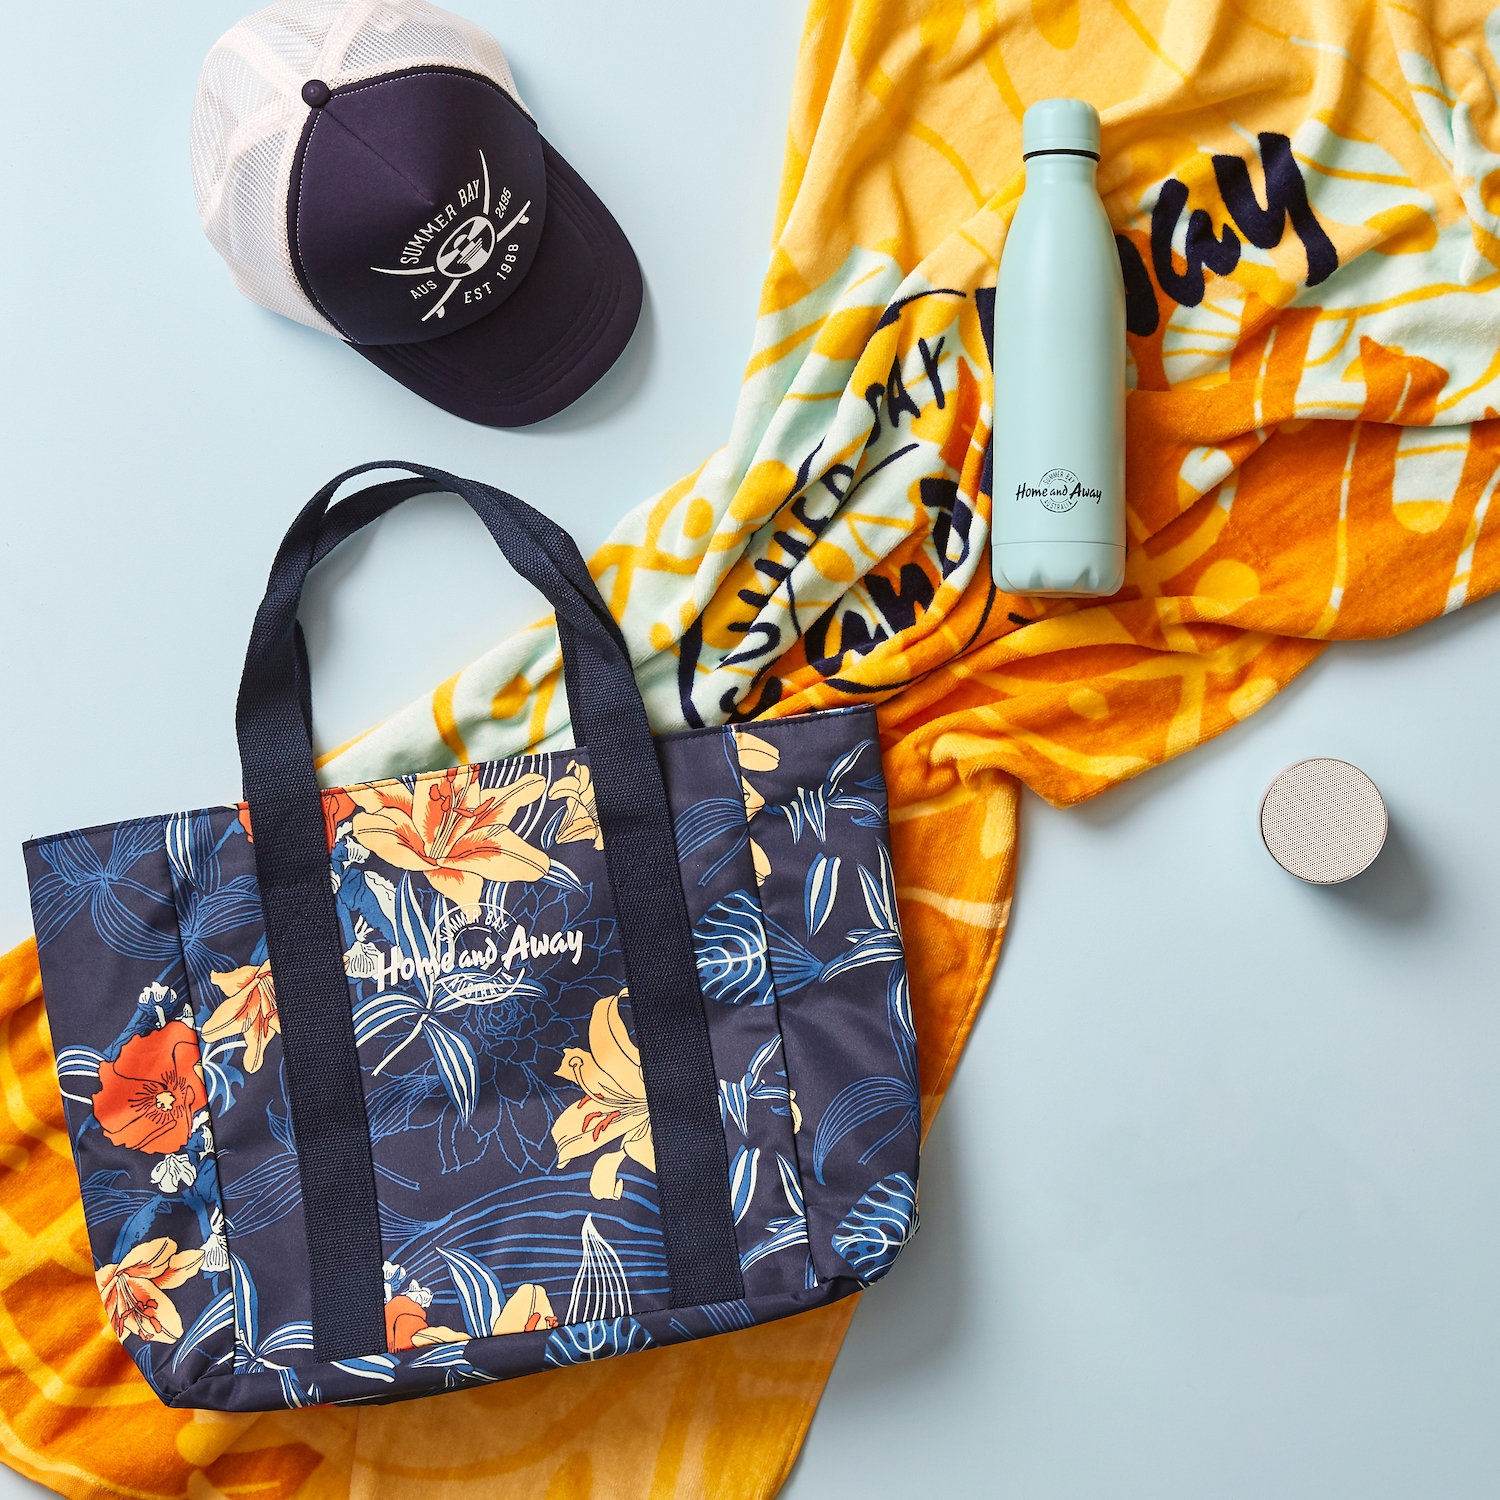 Home_and_Away_Merch_2021